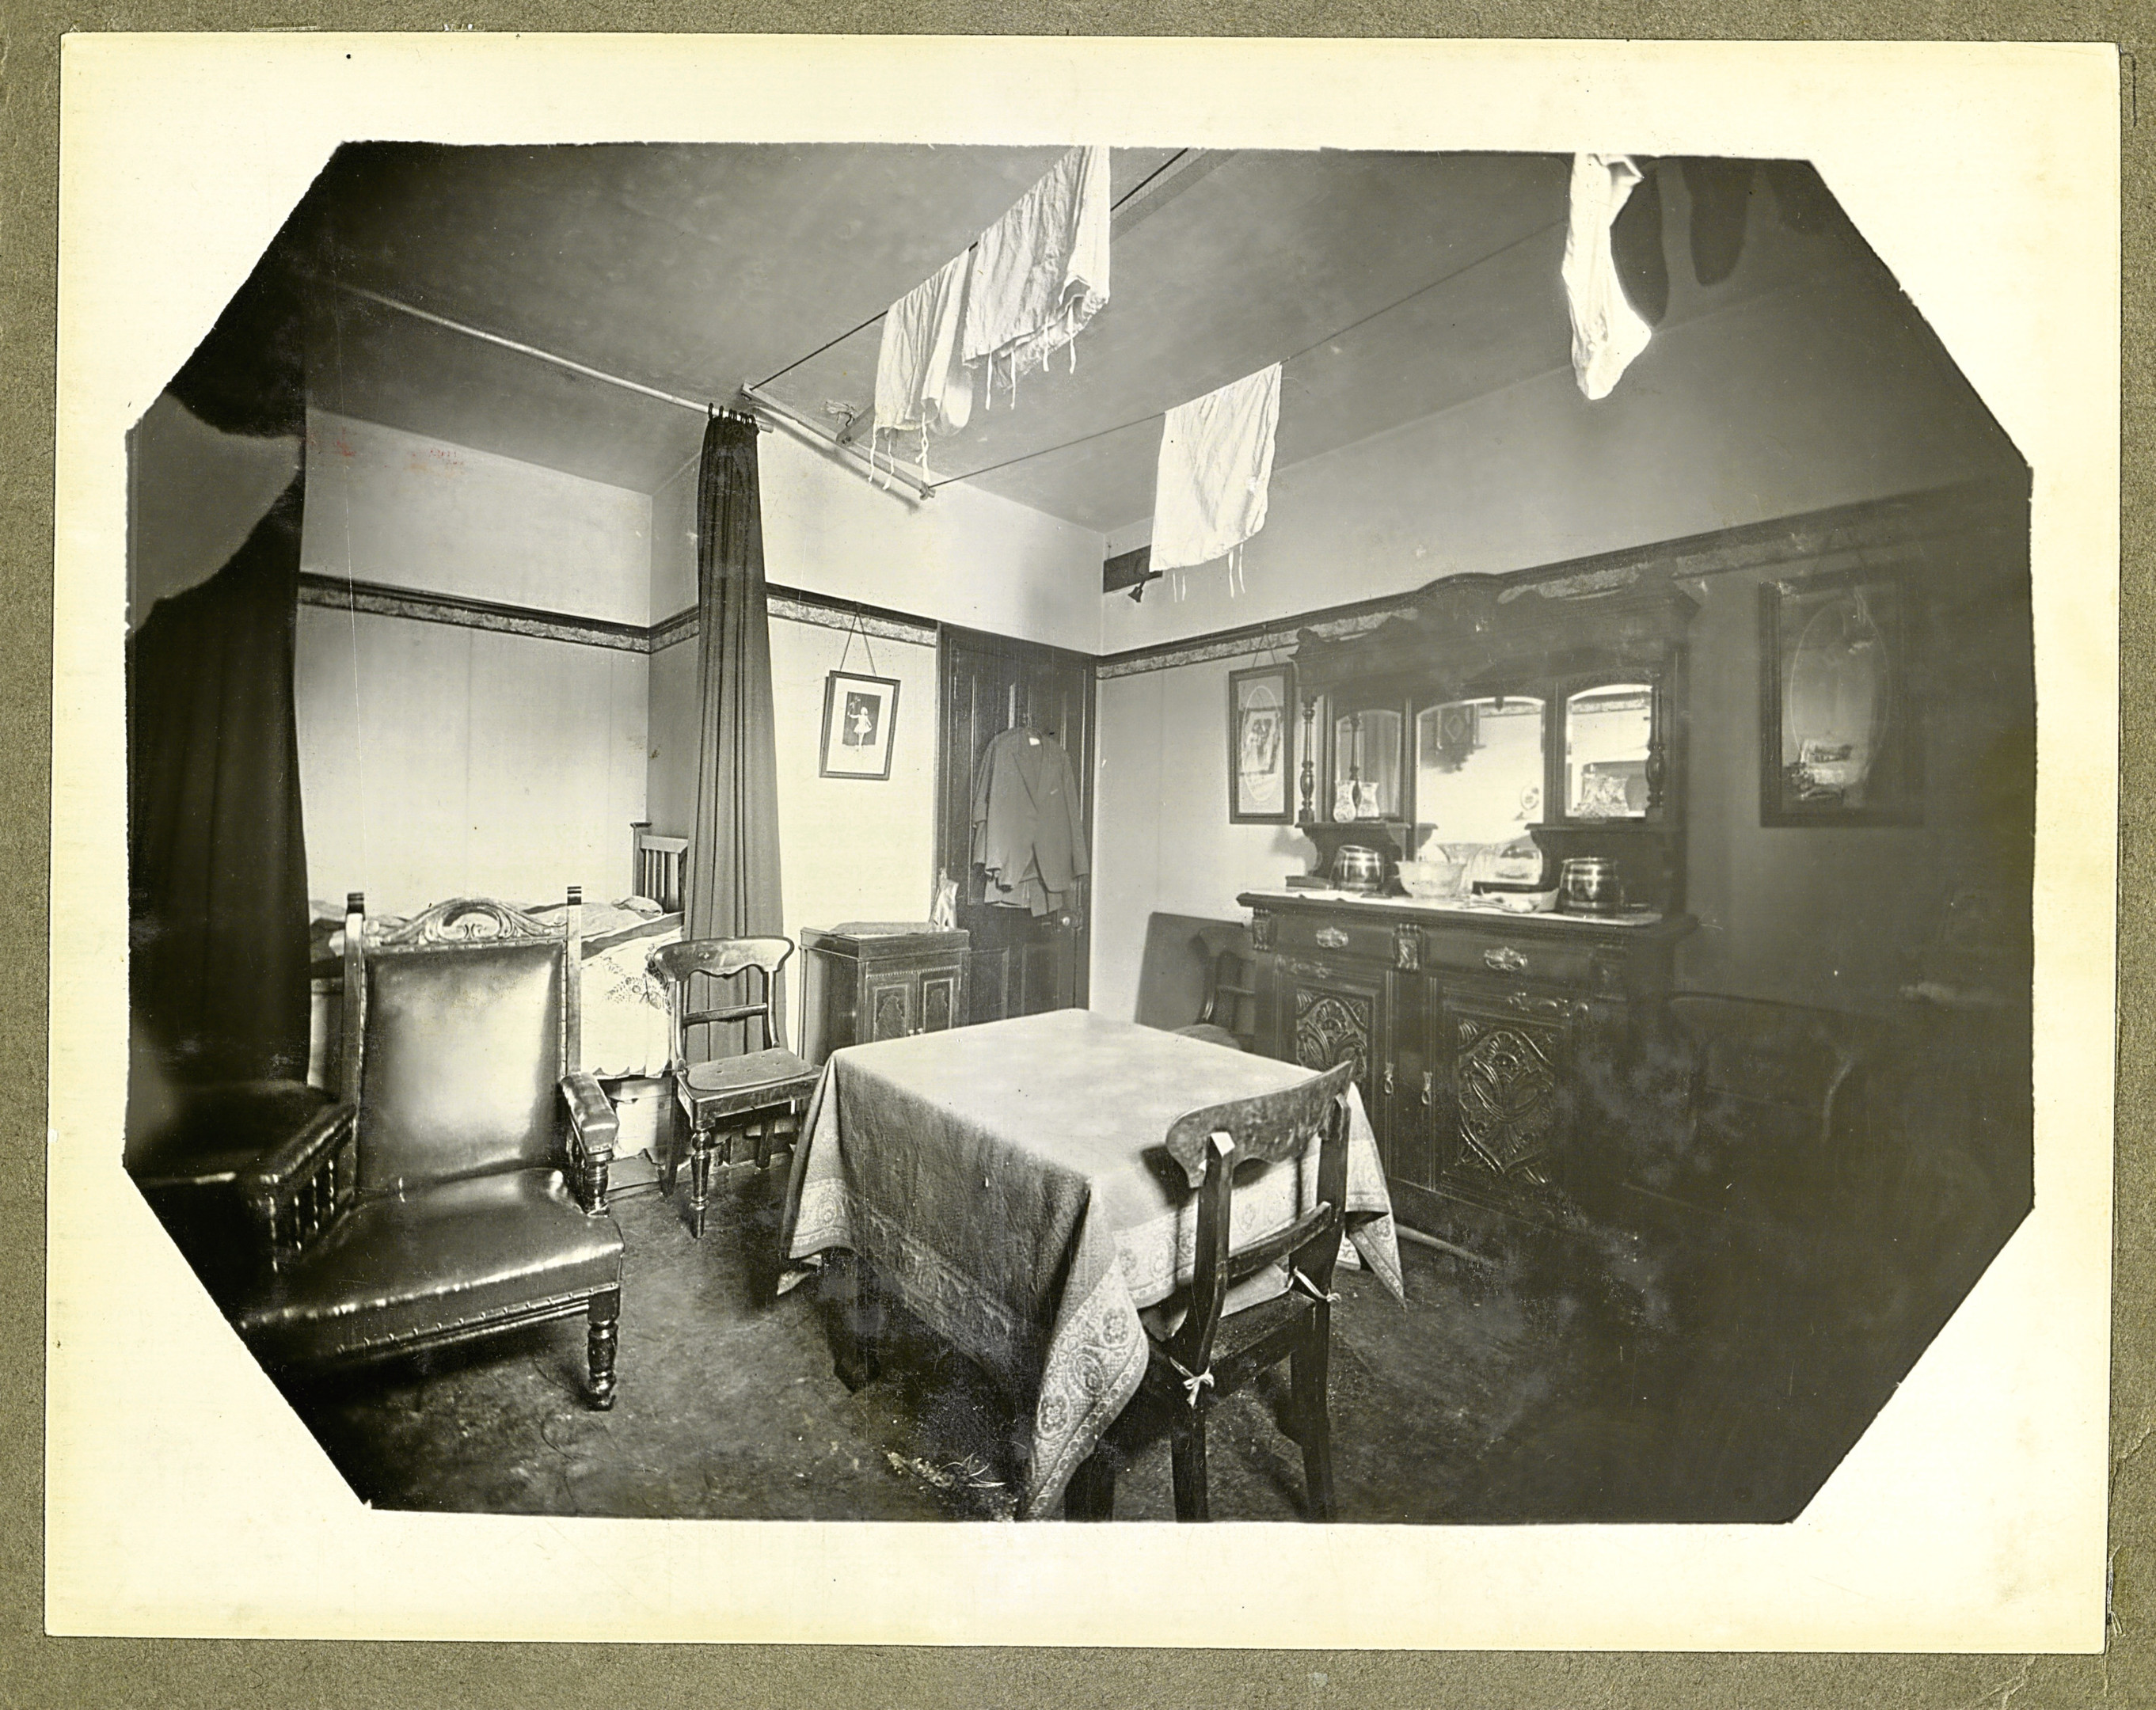 Photographs from a 1907 murder will be on display at the Crime Scene Aberdeen exhibition.